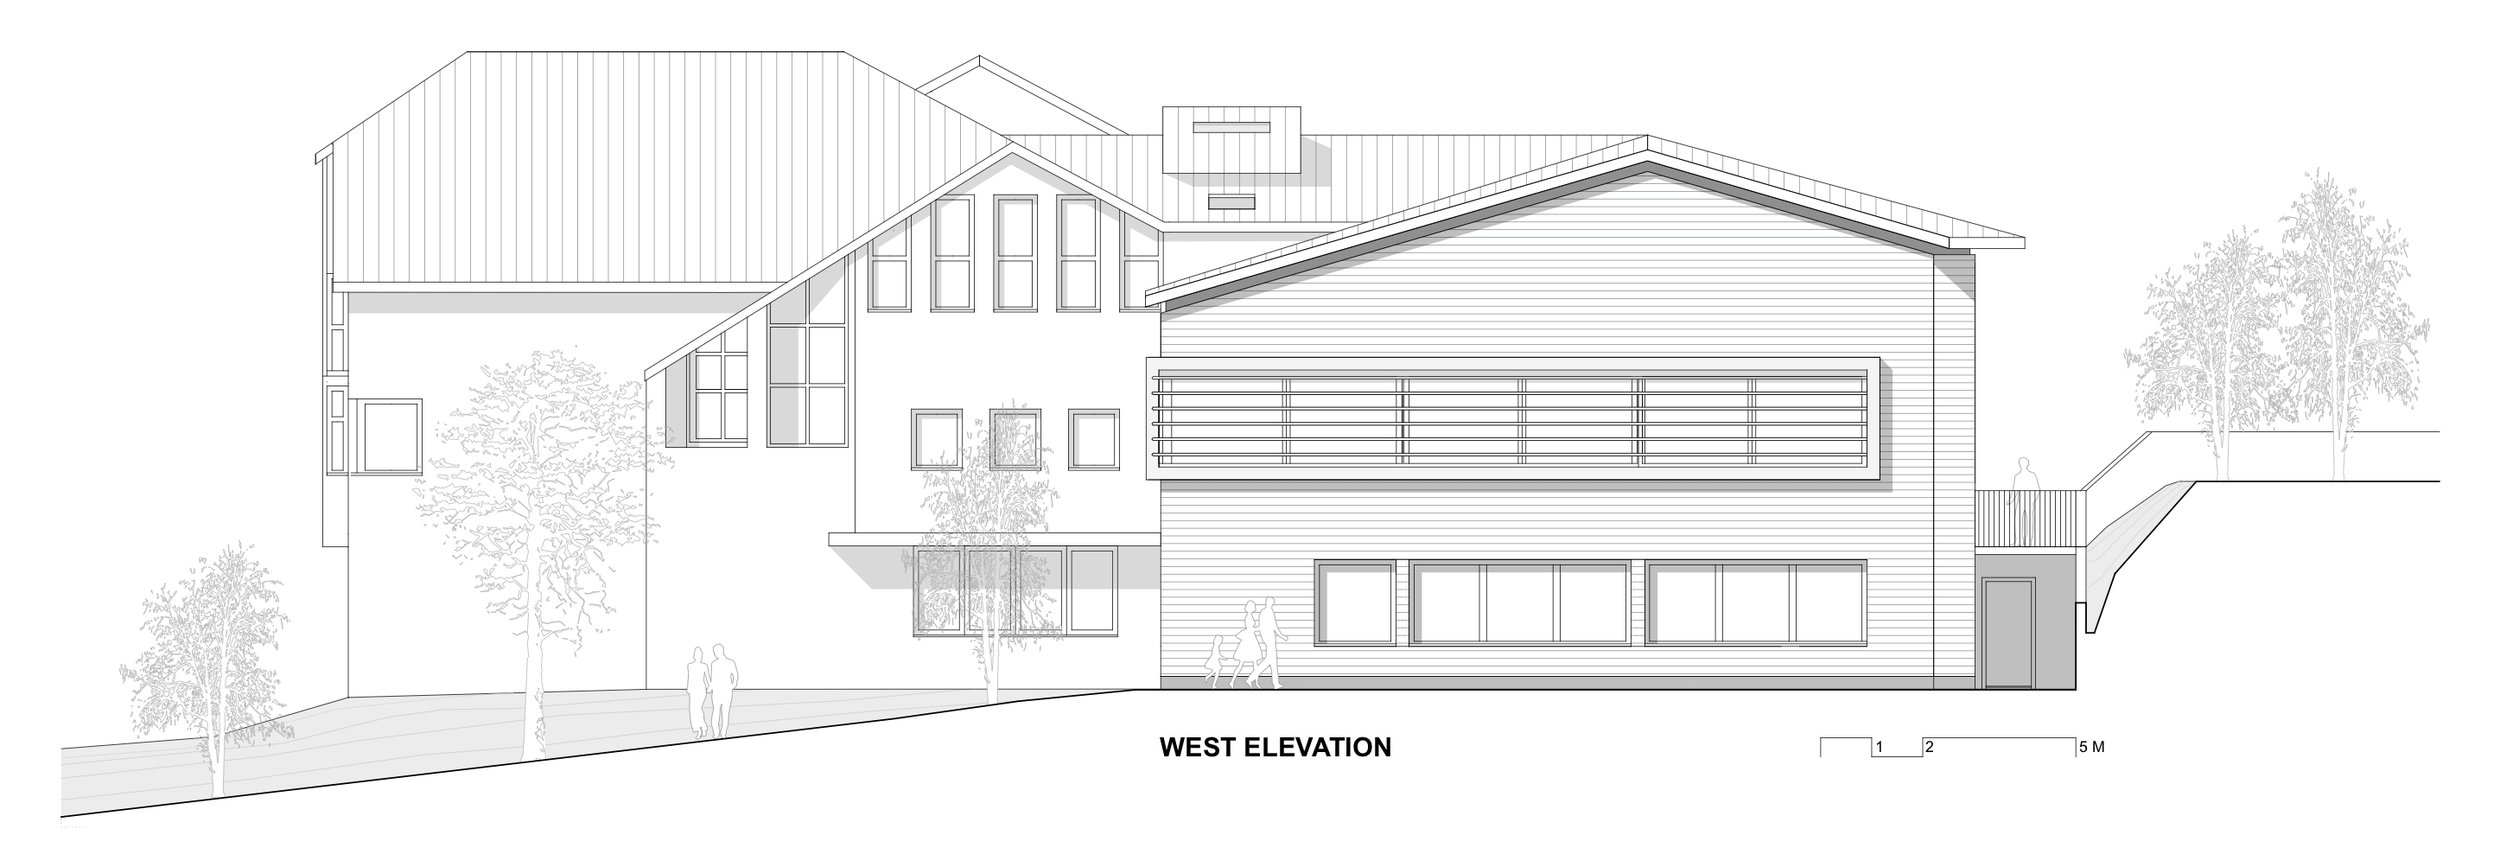 P.01 West Elevation.jpg